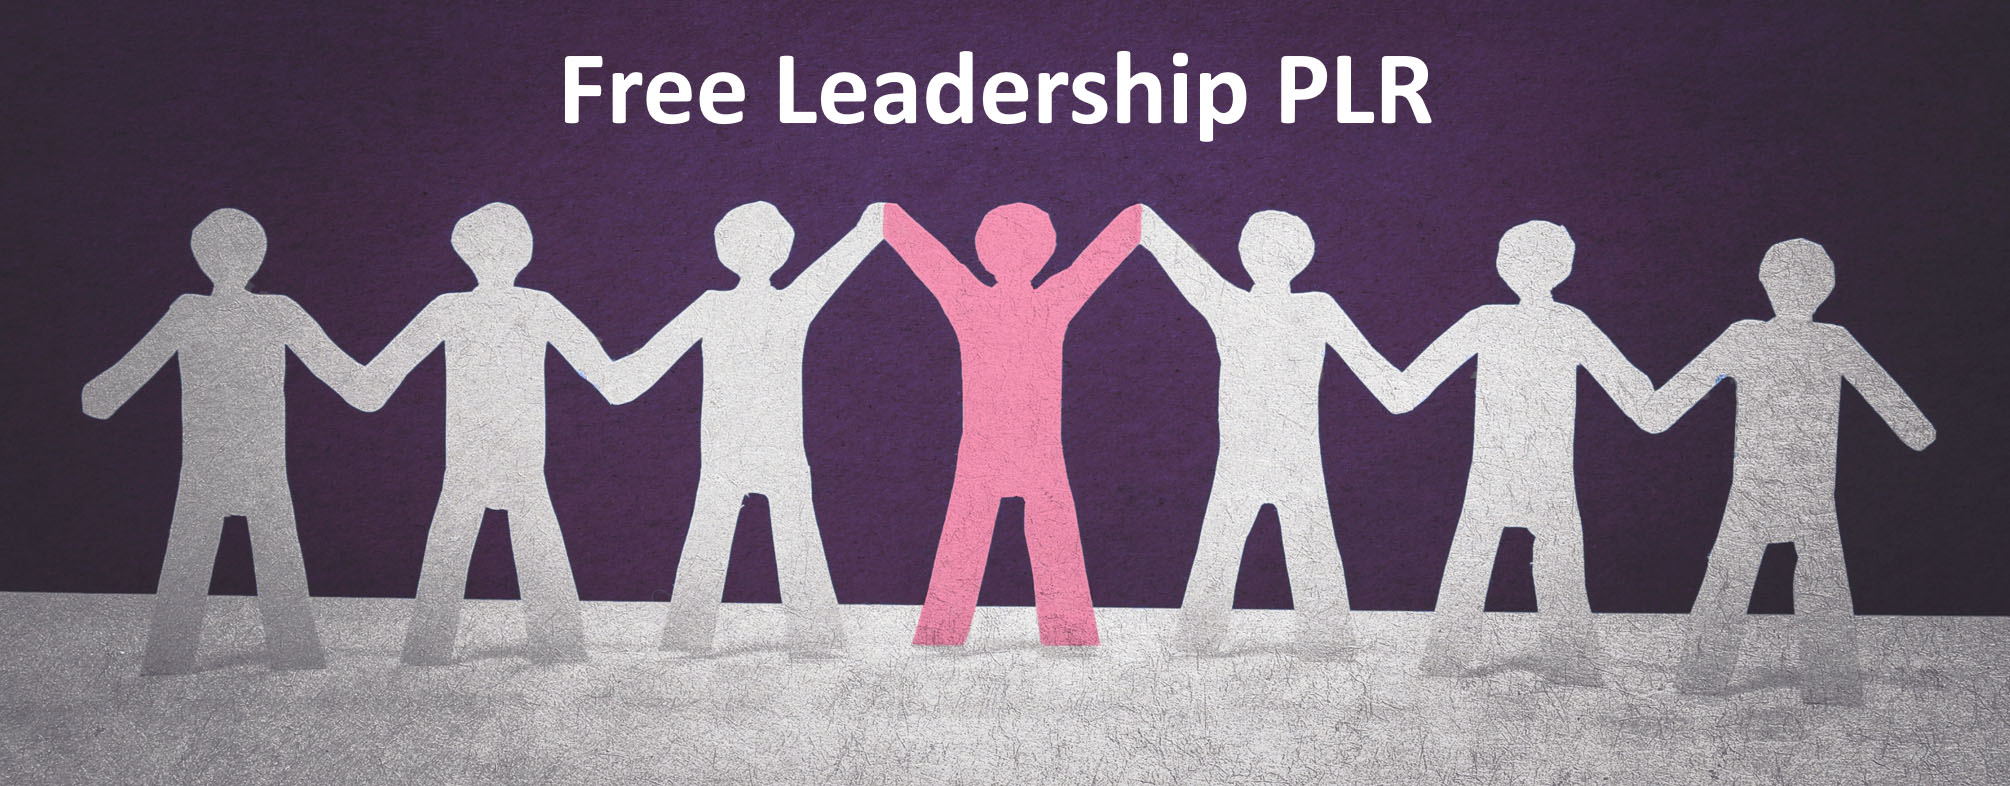 Free Leadership PLR Articles